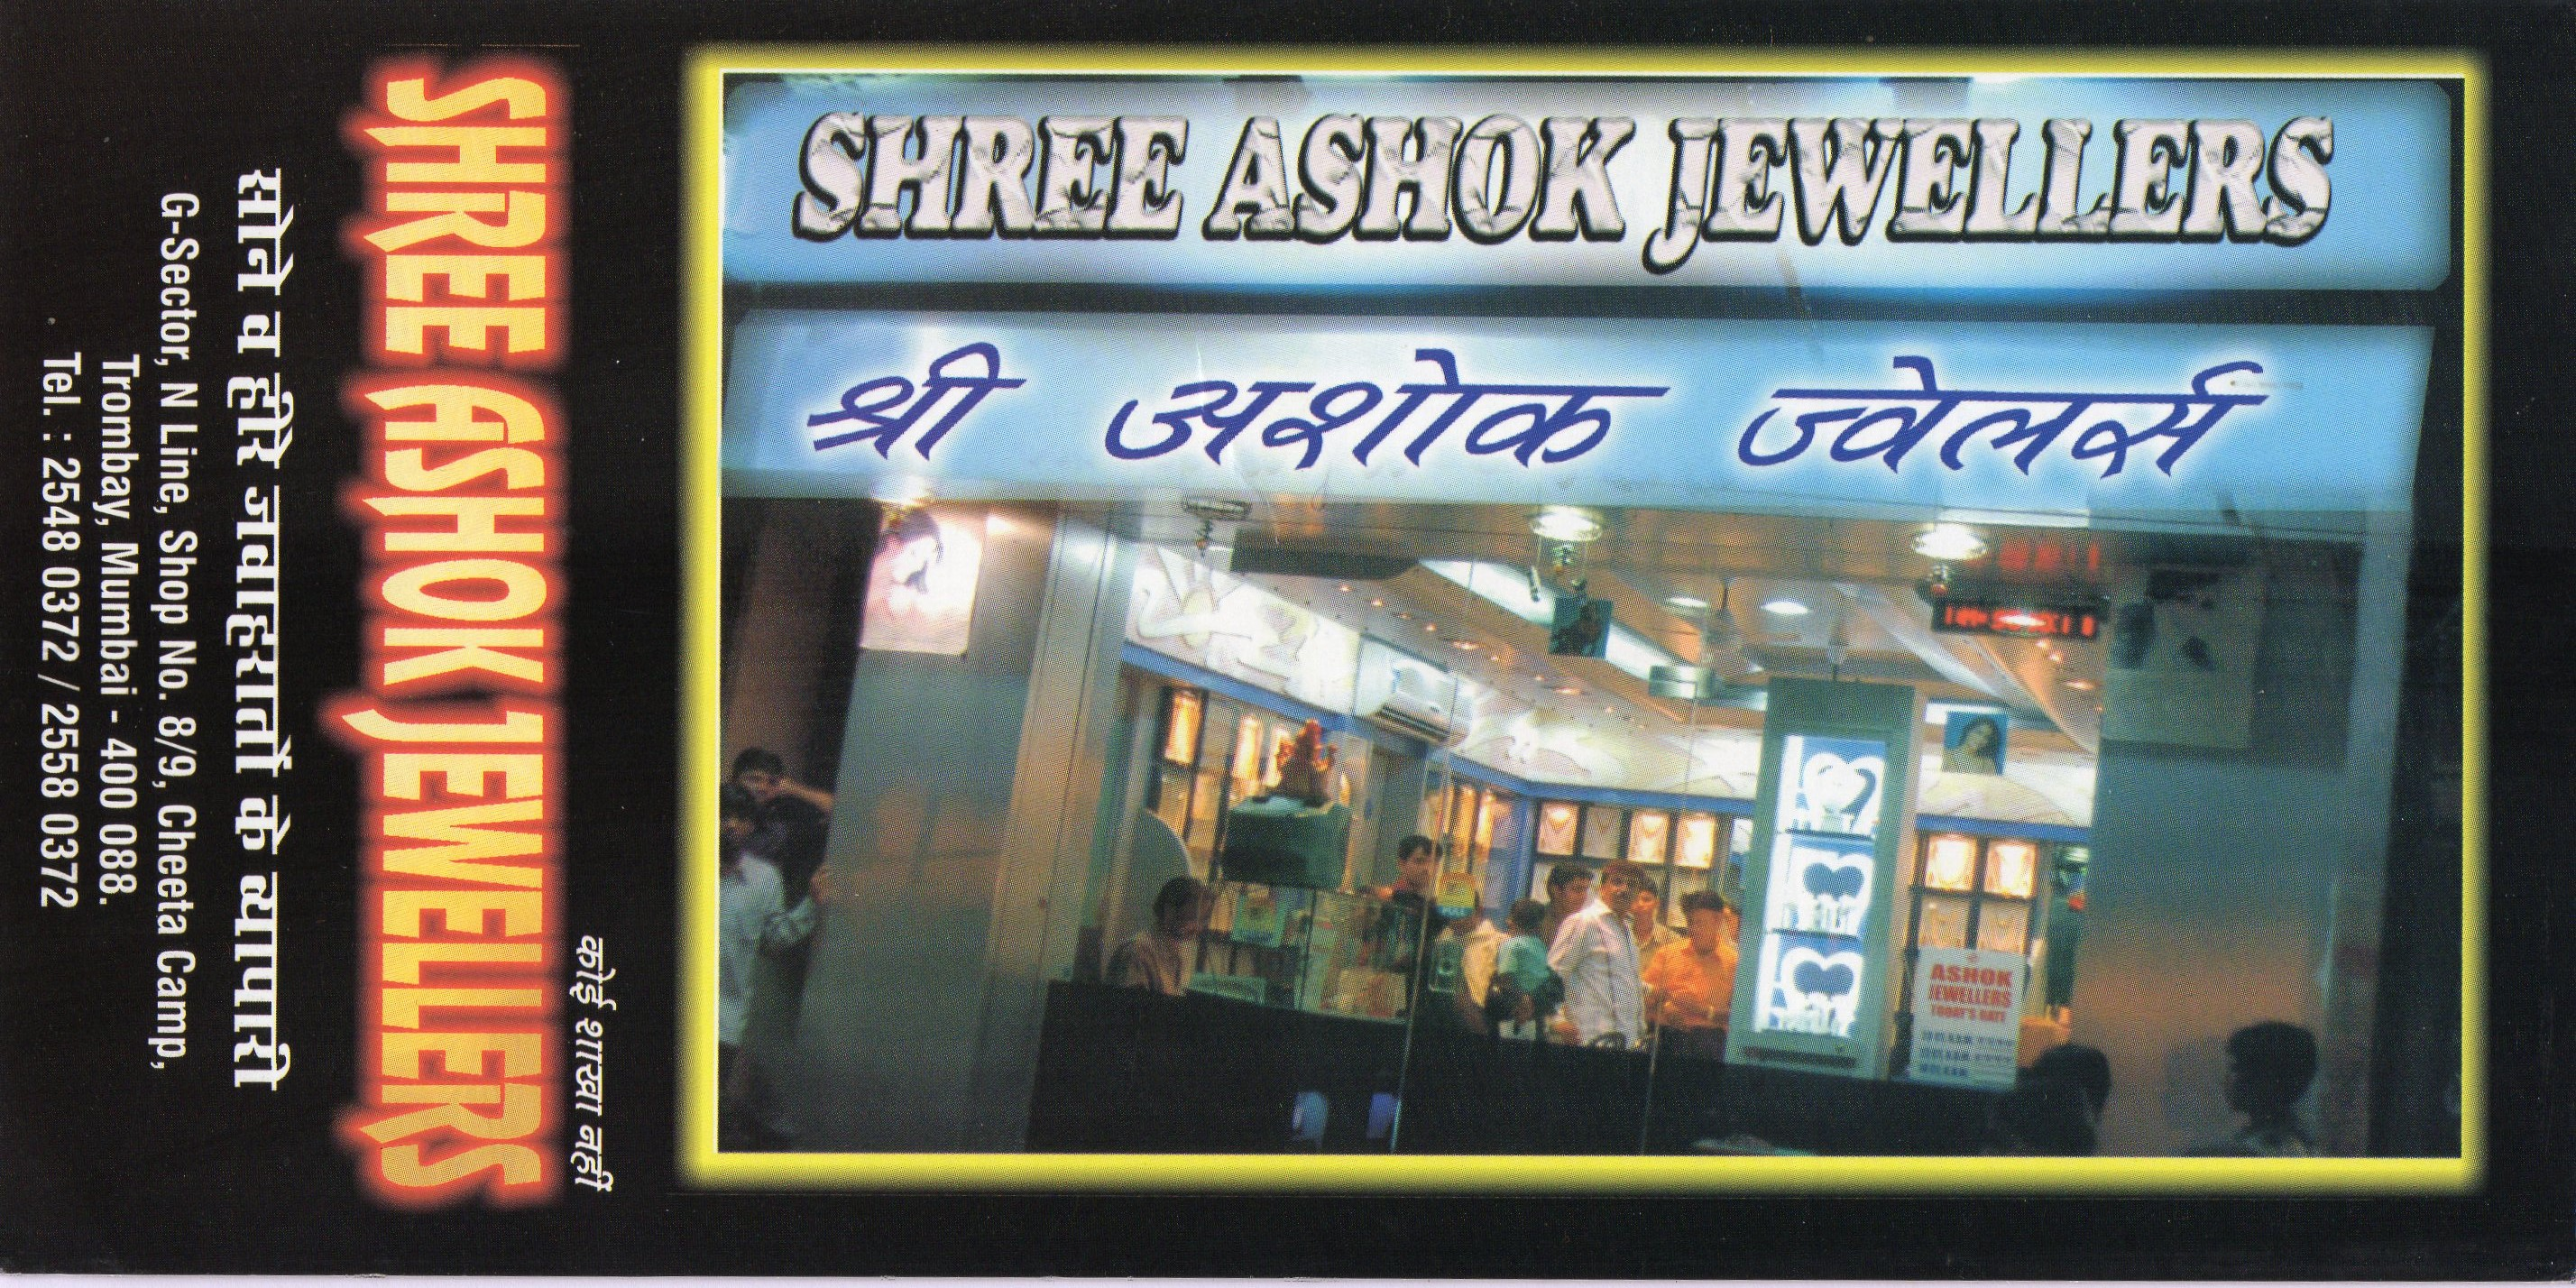 Shree Ashok Jewelers